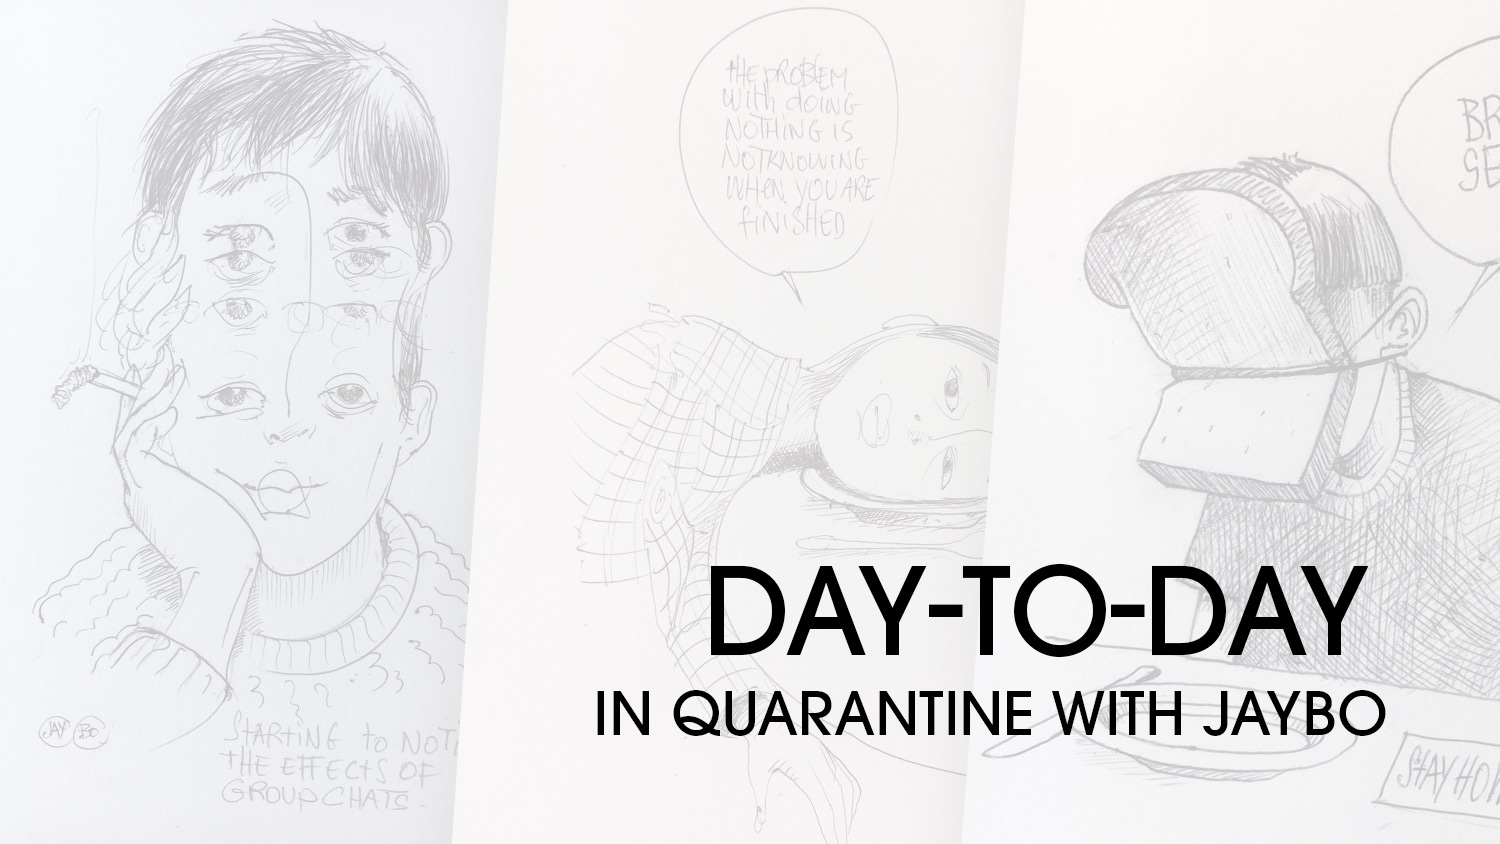 Day to Day in quarantine with Jaybo